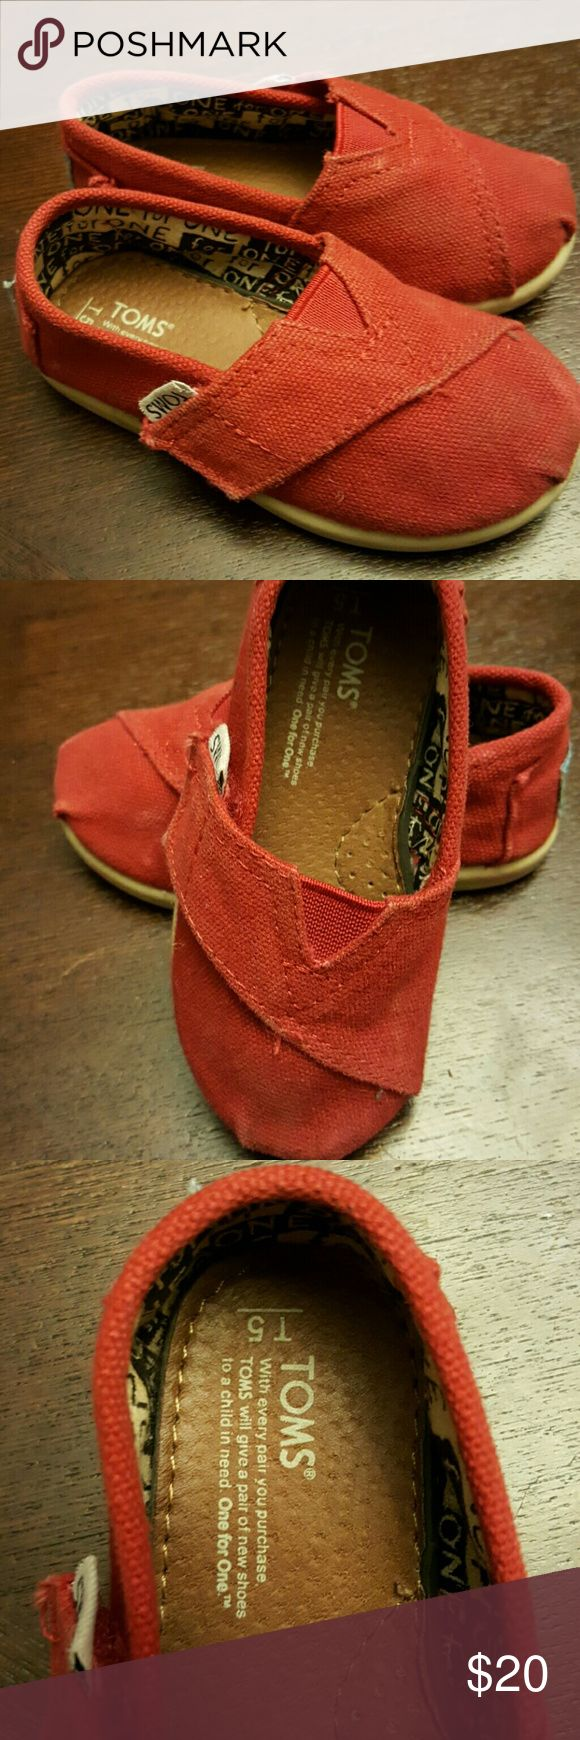 Toms toddler red shoes Toms toddler red shoes, size 5. Worn a few times,  no visible tears or holes.  Make an offer...thanks for stopping in! TOMS Shoes Sneakers